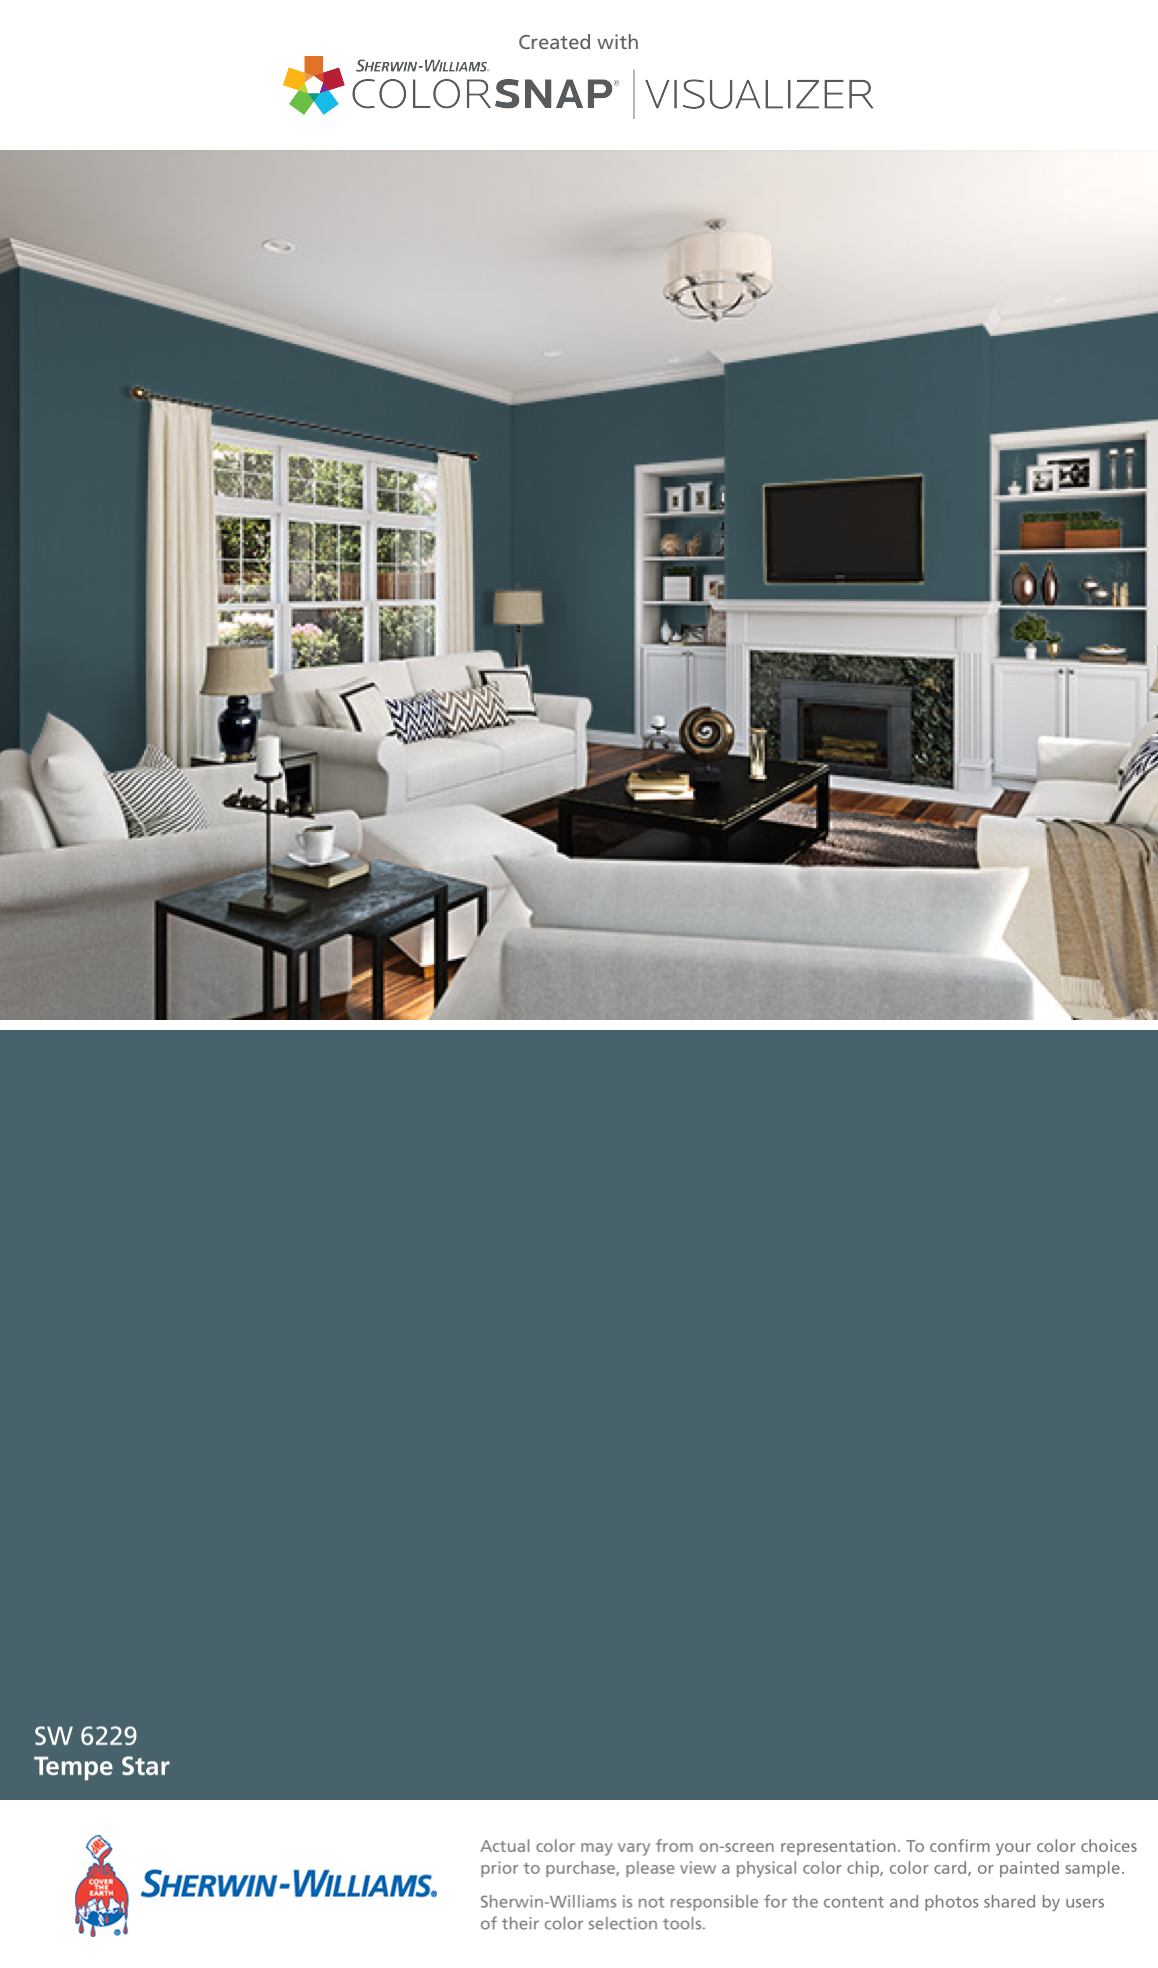 I Found This Color With Colorsnap Visualizer For Iphone By Sherwin Williams Tempe Star Sherwin Williams Paint Colors Room Paint Colors Paint Colors For Home